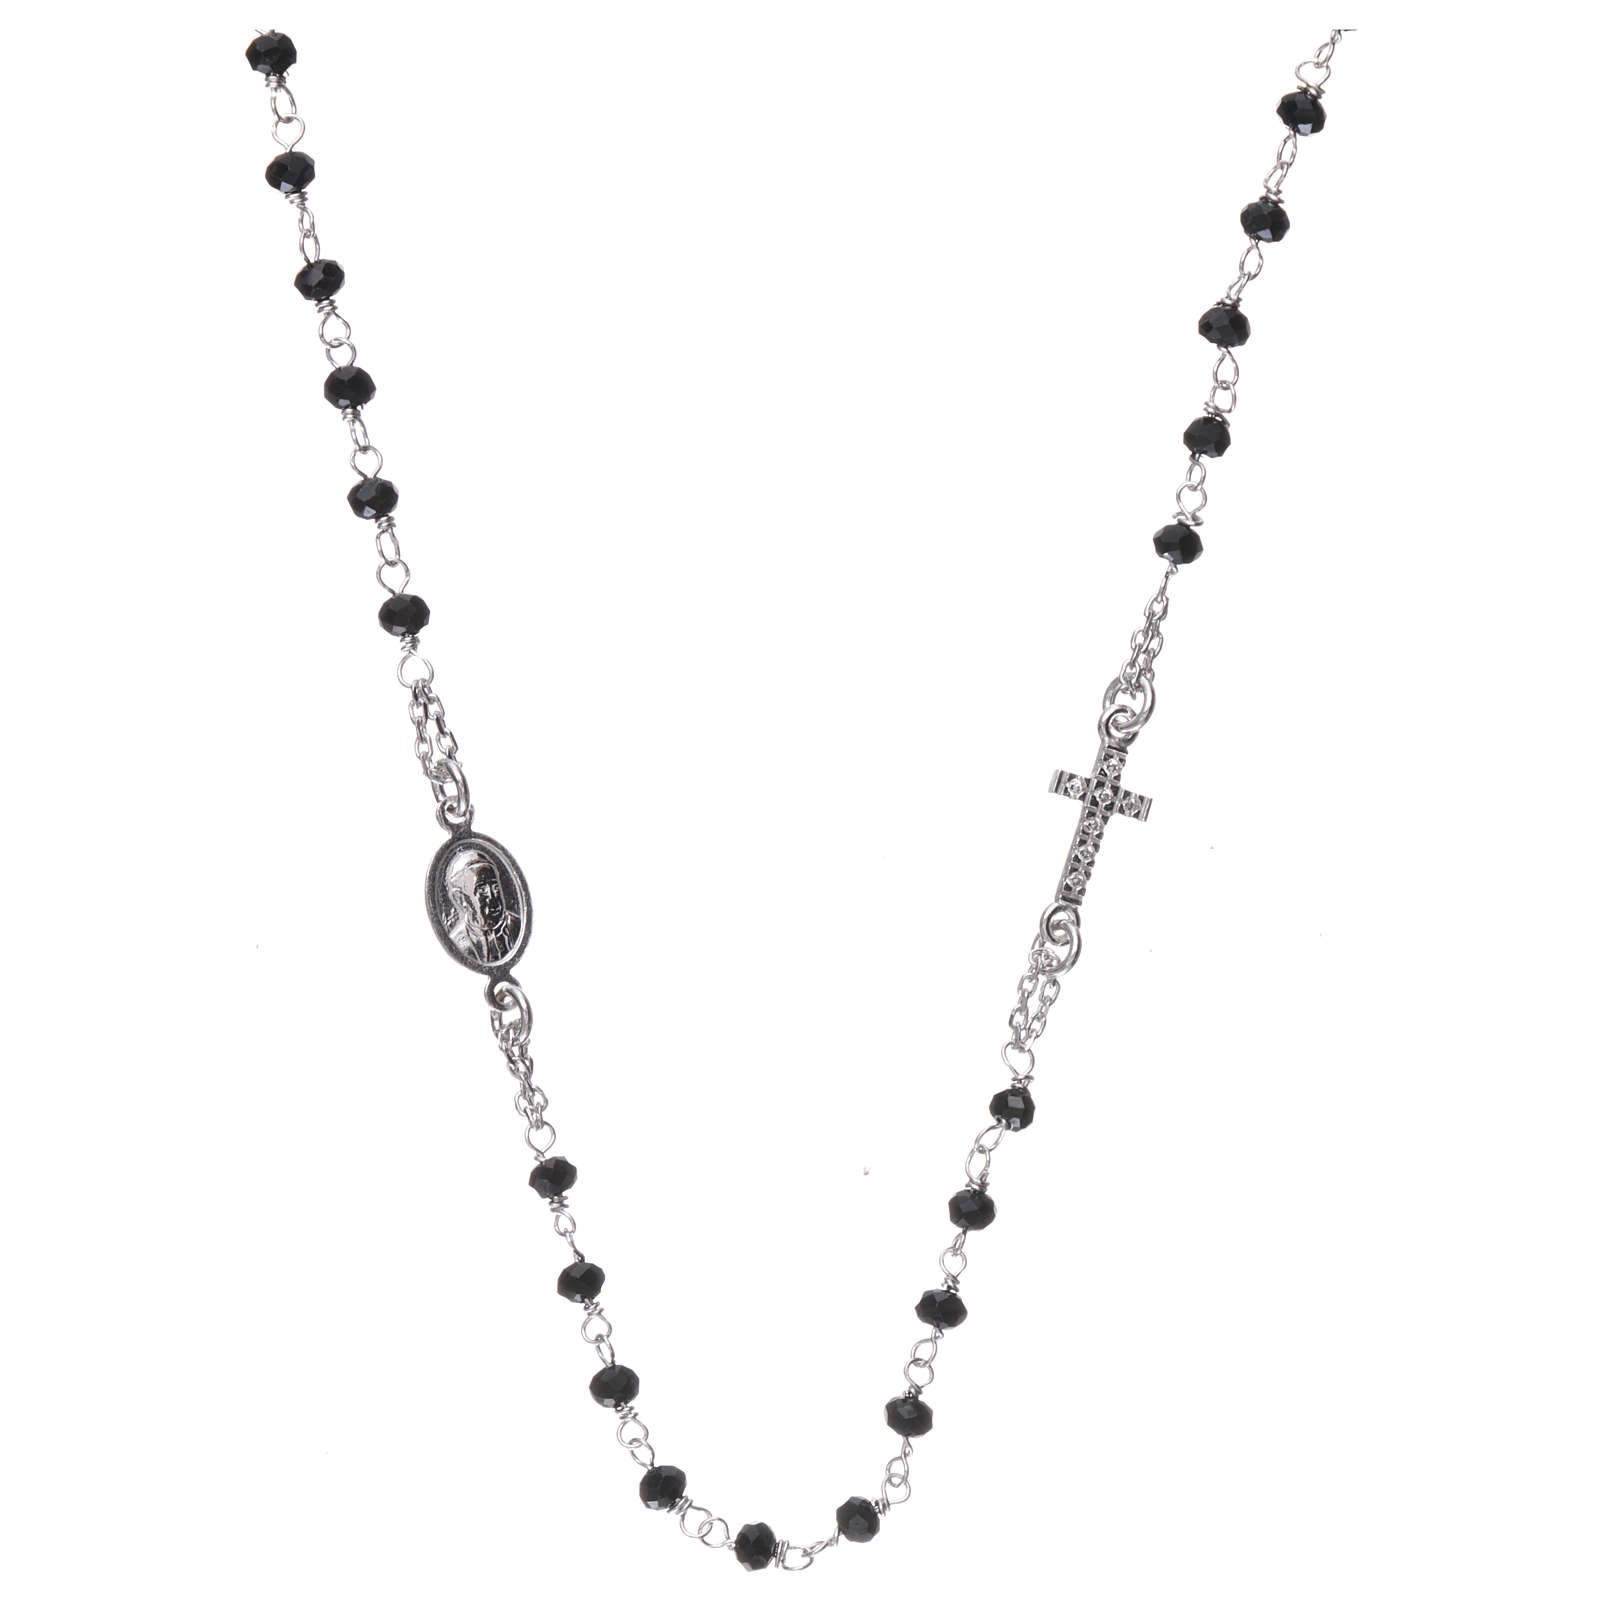 Rosary AMEN Necklace Pavè black crystals silver 925, Rhodium finish 4